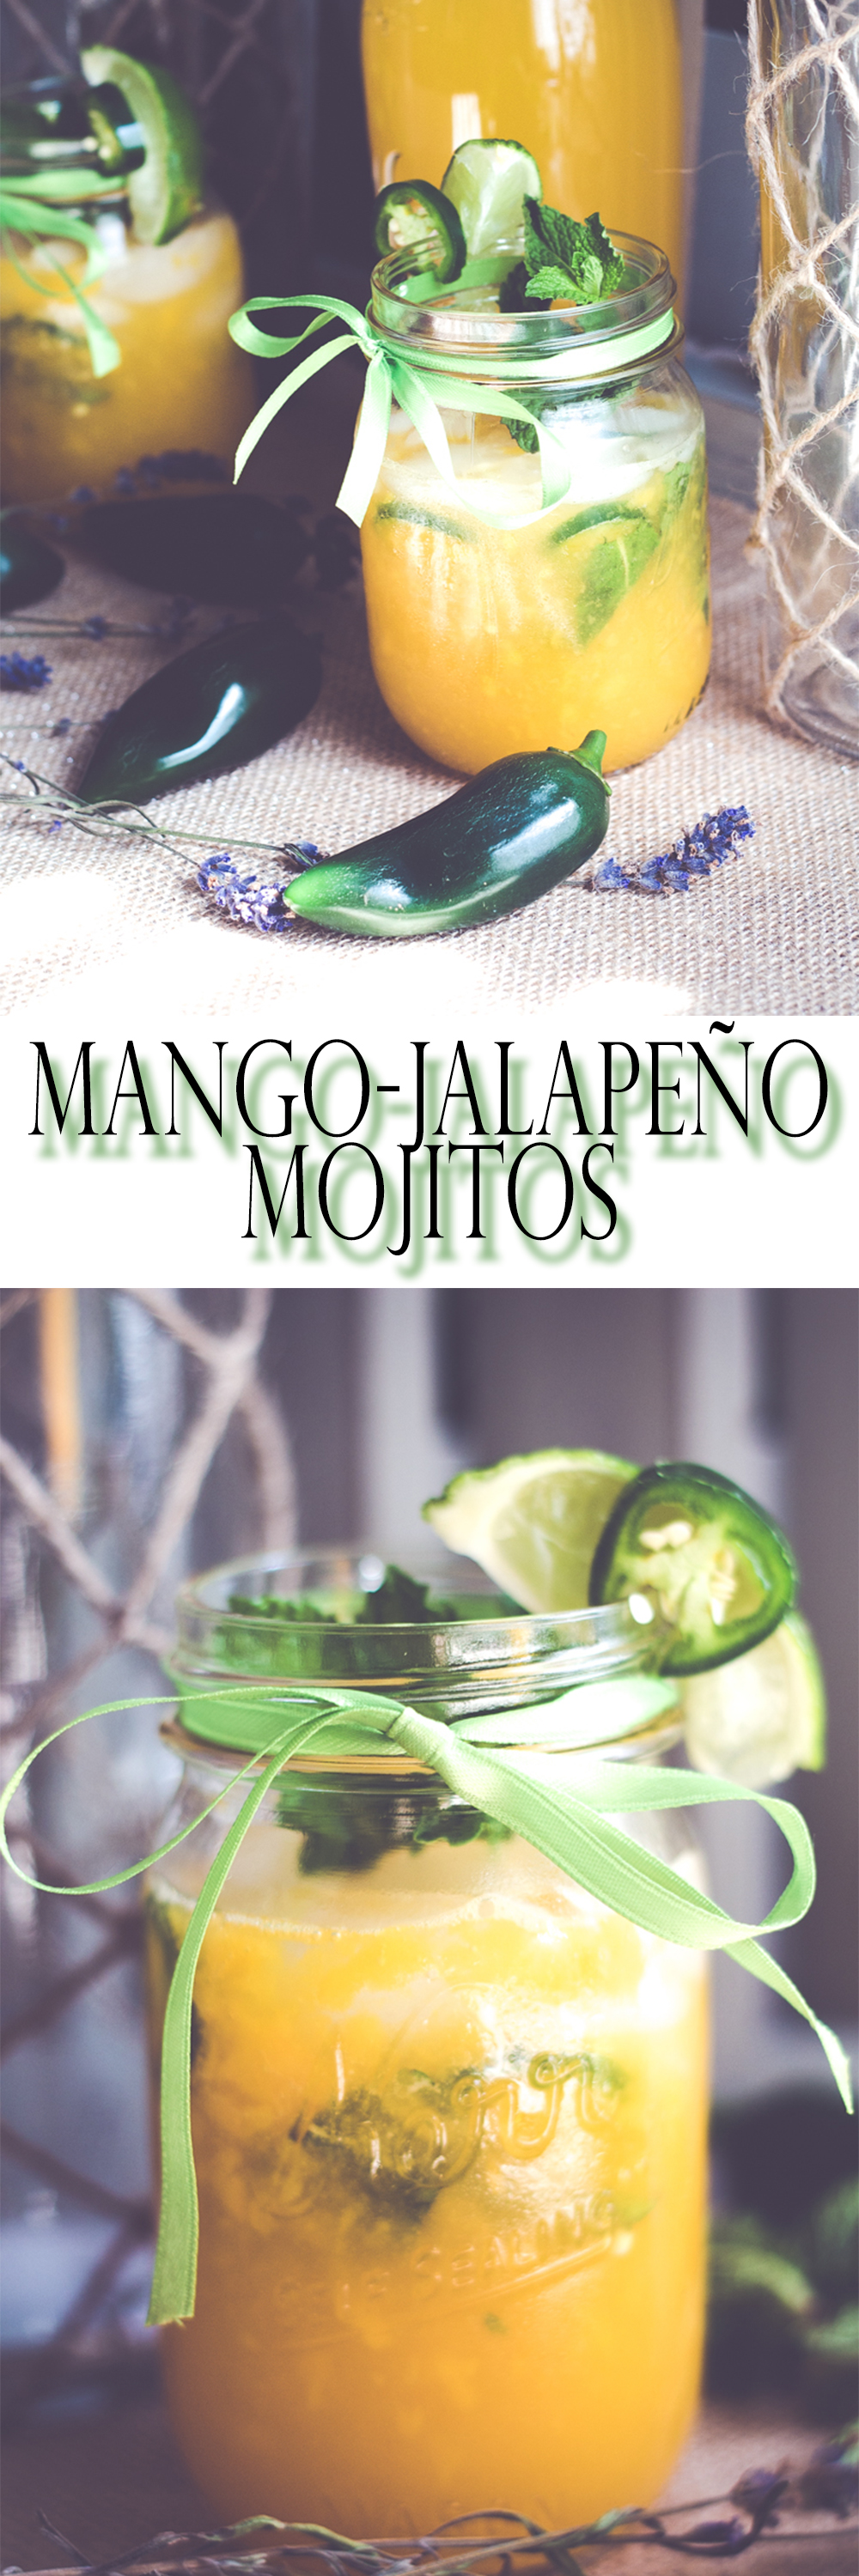 Mango-Jalapeño Mojitos are a great way to start your weekend off right. |BeingMelody.com|@BeingMelody